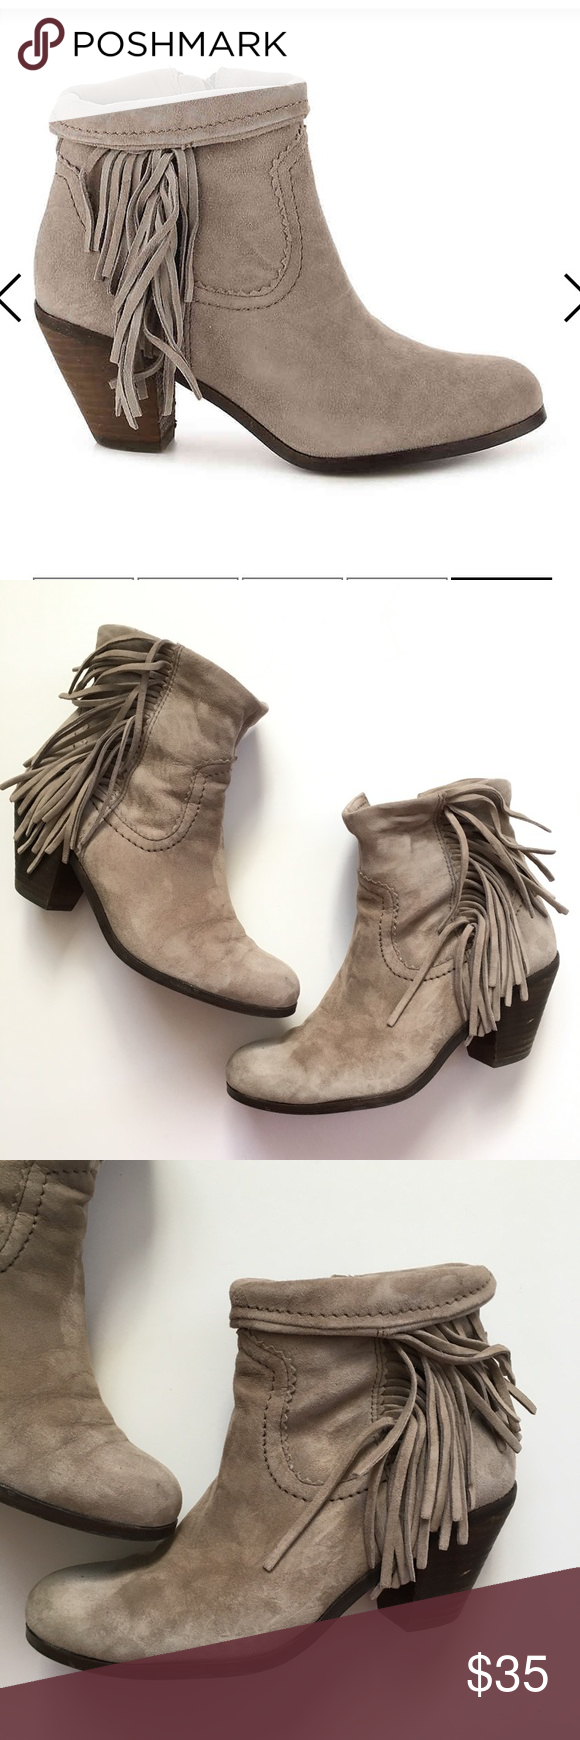 099022e736ff87 Sam Edelman Louie suede fringe bootie Gently used. Size 6. Tan suede. Can  be worn rolled up or down. Sam Edelman Shoes Ankle Boots   Booties